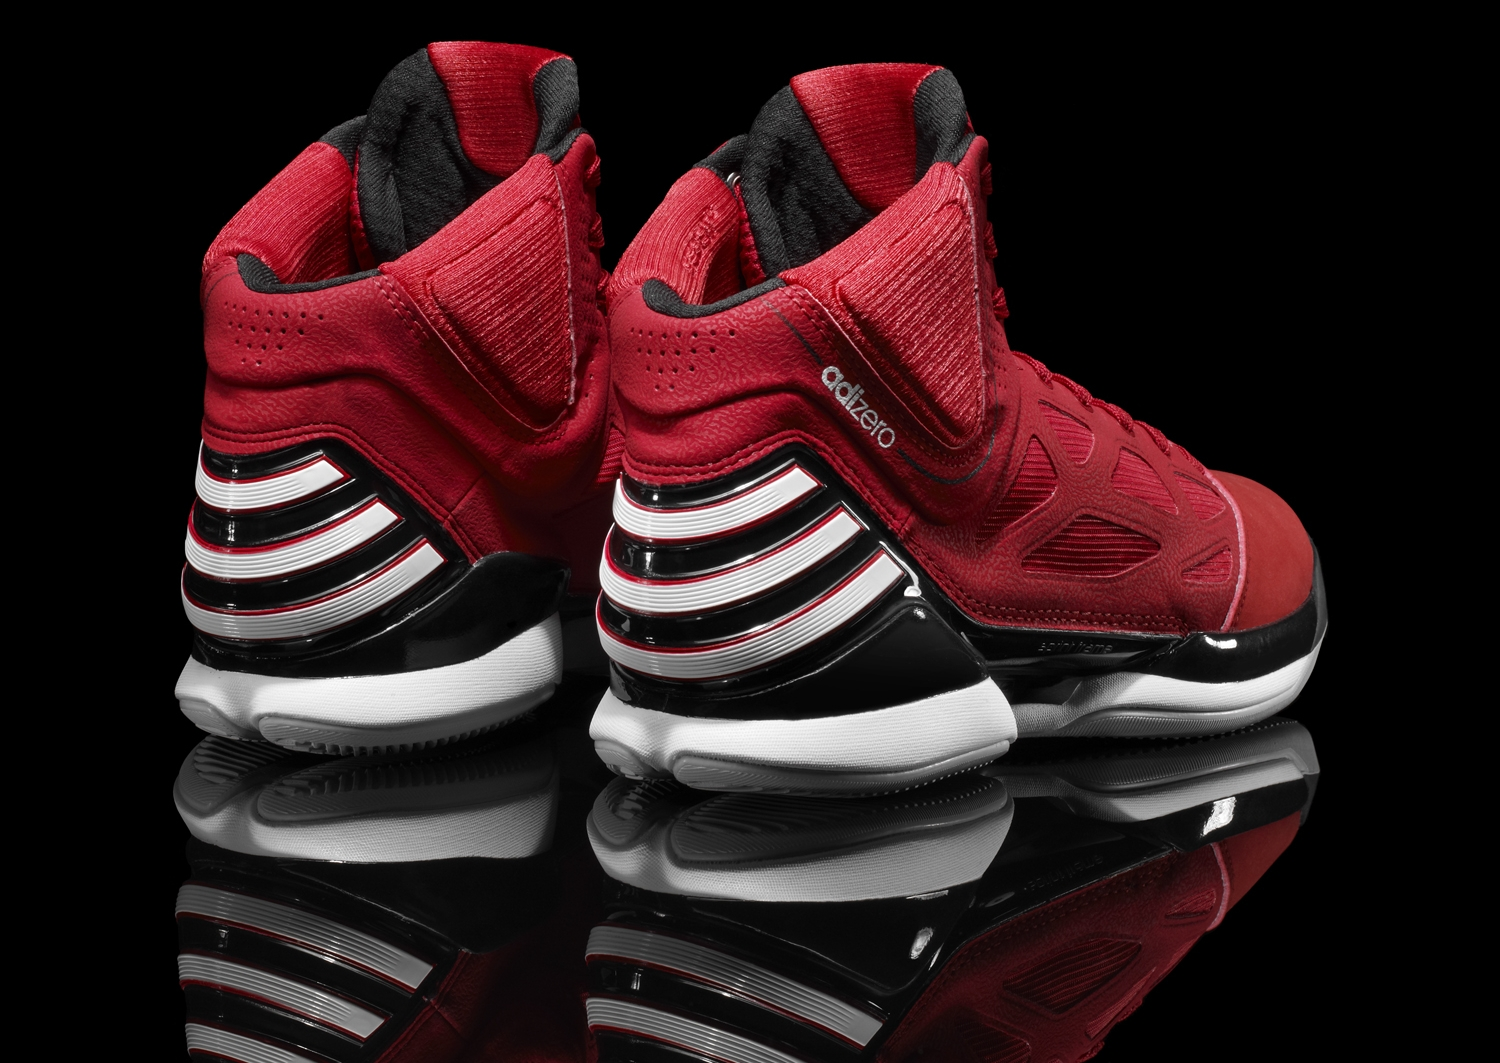 e1401e9459f Derrick Rose Debuts the adidas adiZero Rose 2.5 –  Brenda  Against Knicks.  Ben February 2 ...